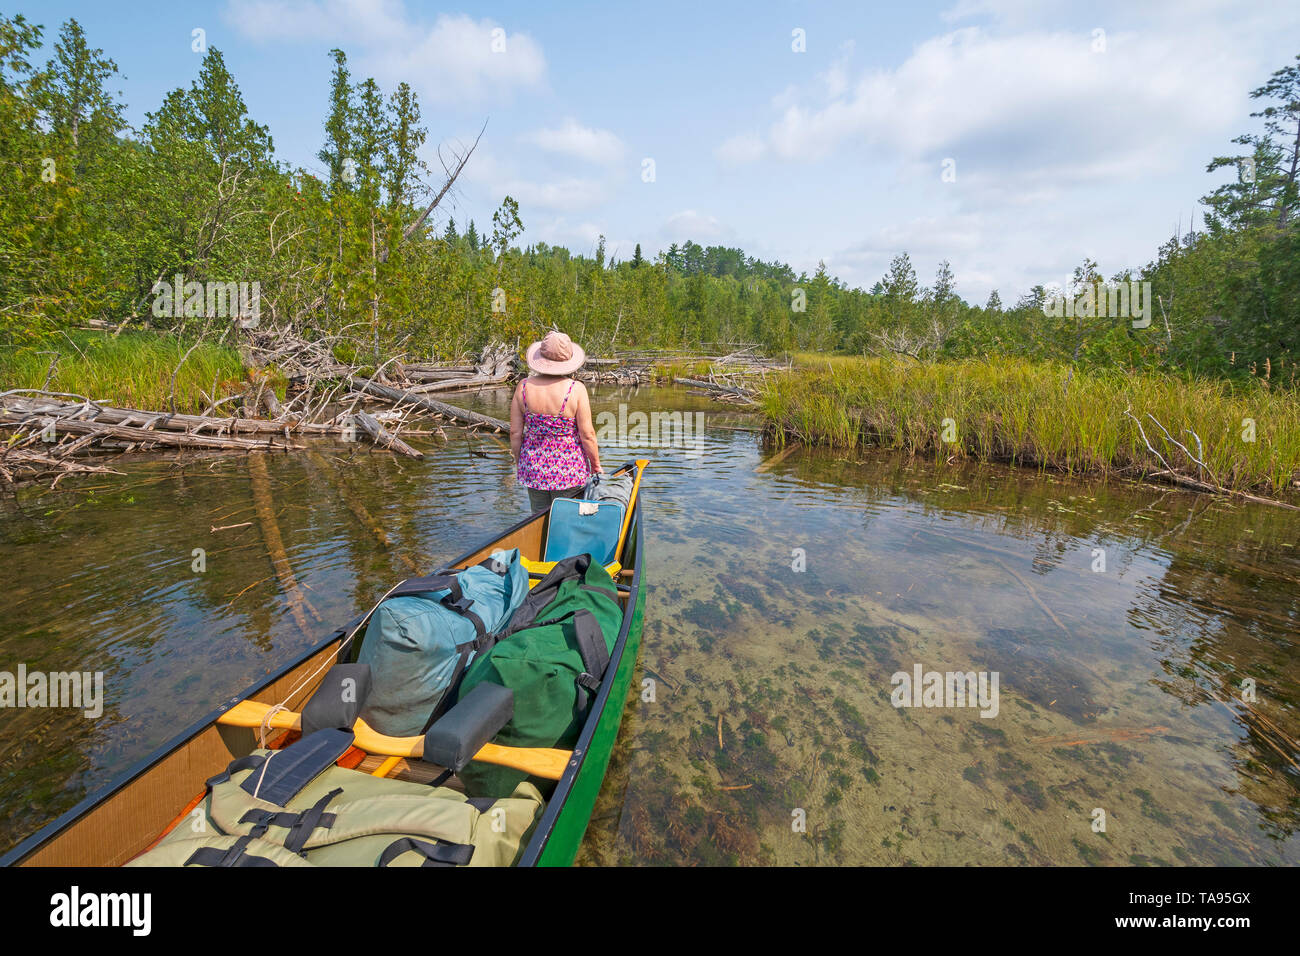 Heading into  a Remote Stream in the Wilderness in Quetico Provincial Park in Ontario - Stock Image